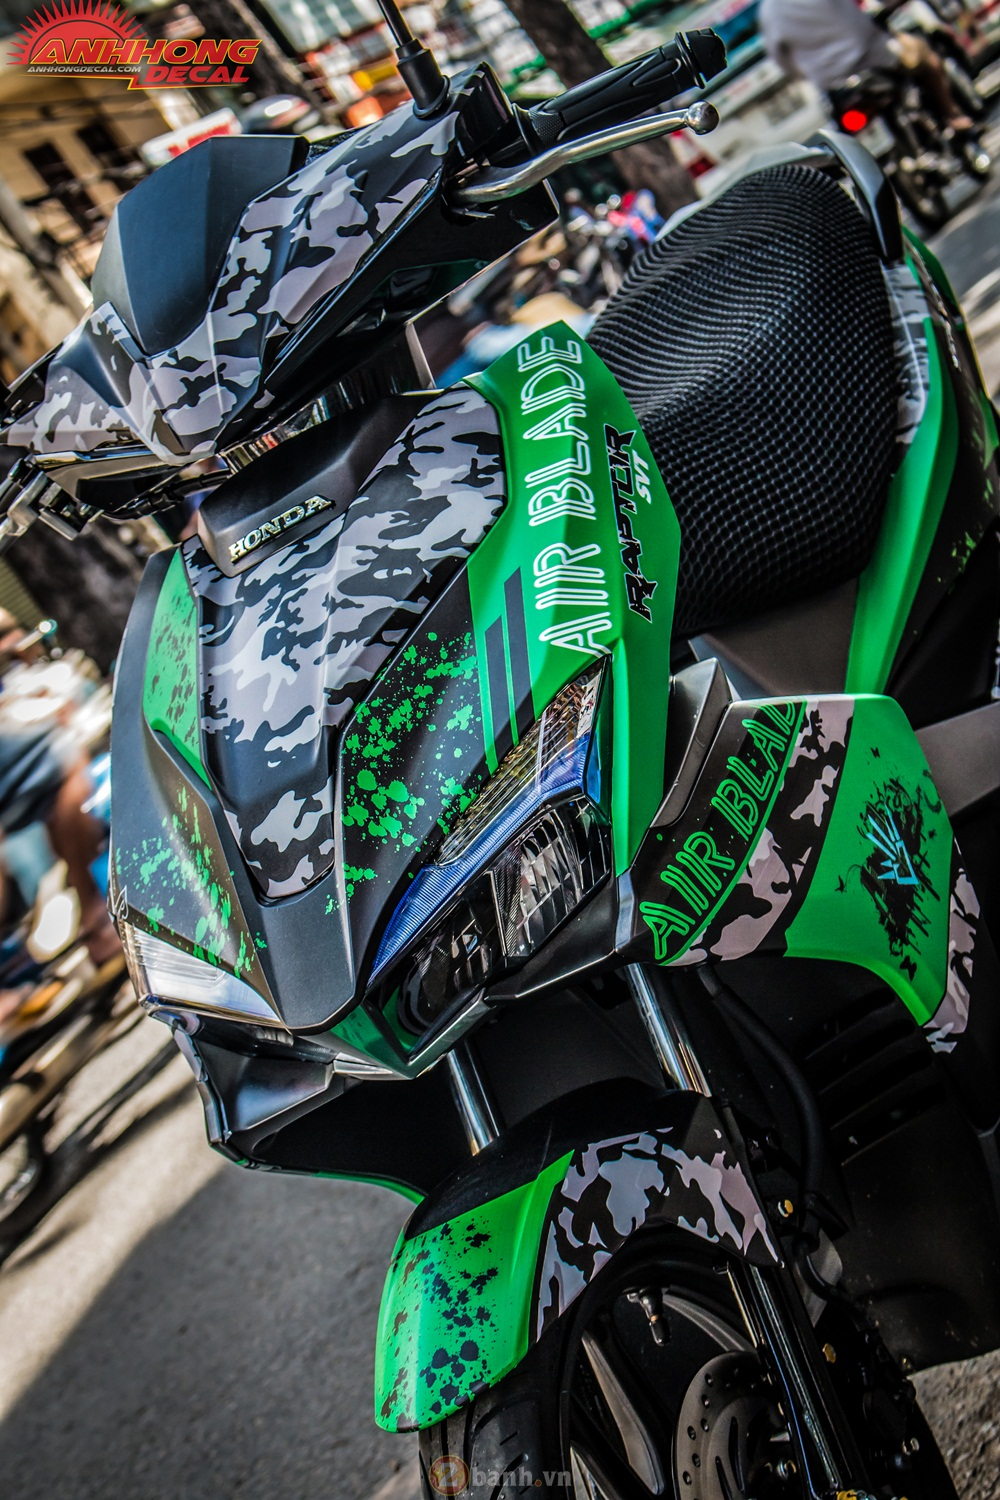 Anh Hong Decal show them ban do AirBlade 125 an tuong - 3